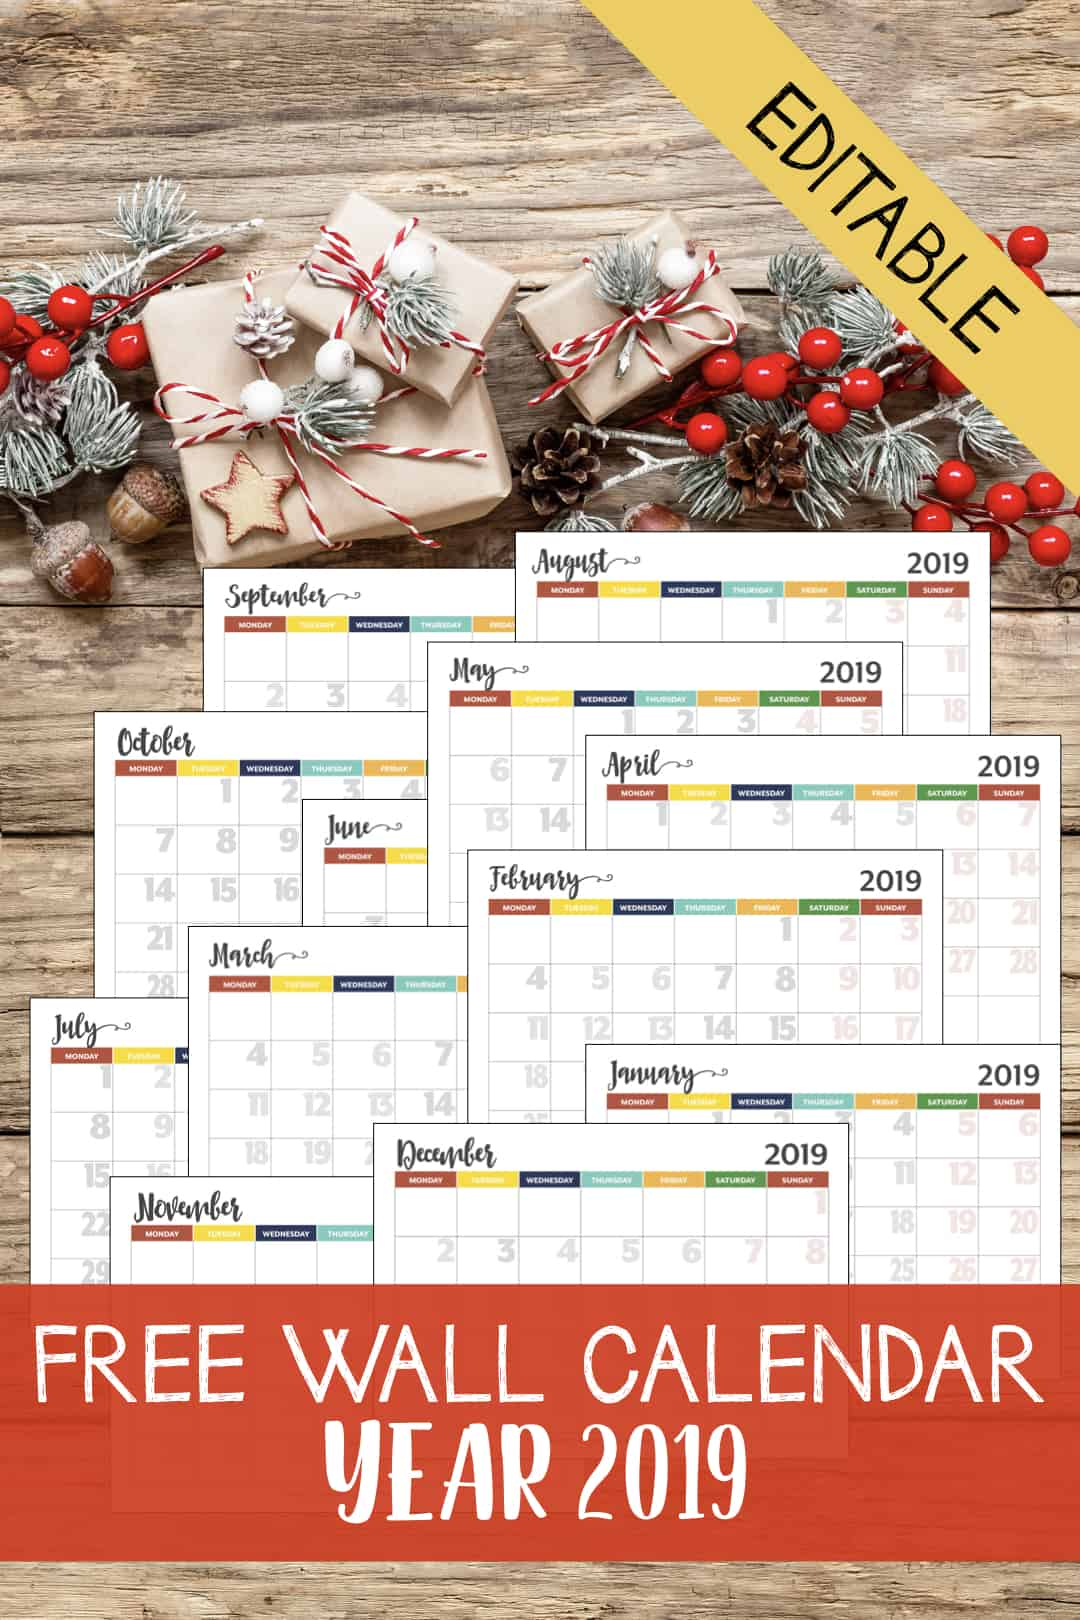 Happy New Year 2019! You might have got the 2019 calendar with you in either electronic and paper form. Today I would like to share a customized calendar that you can edit and use as a wall calendar. This editable 2019 wall calendar will be able to help you and family to notice some events, deadlines, chores, etc.